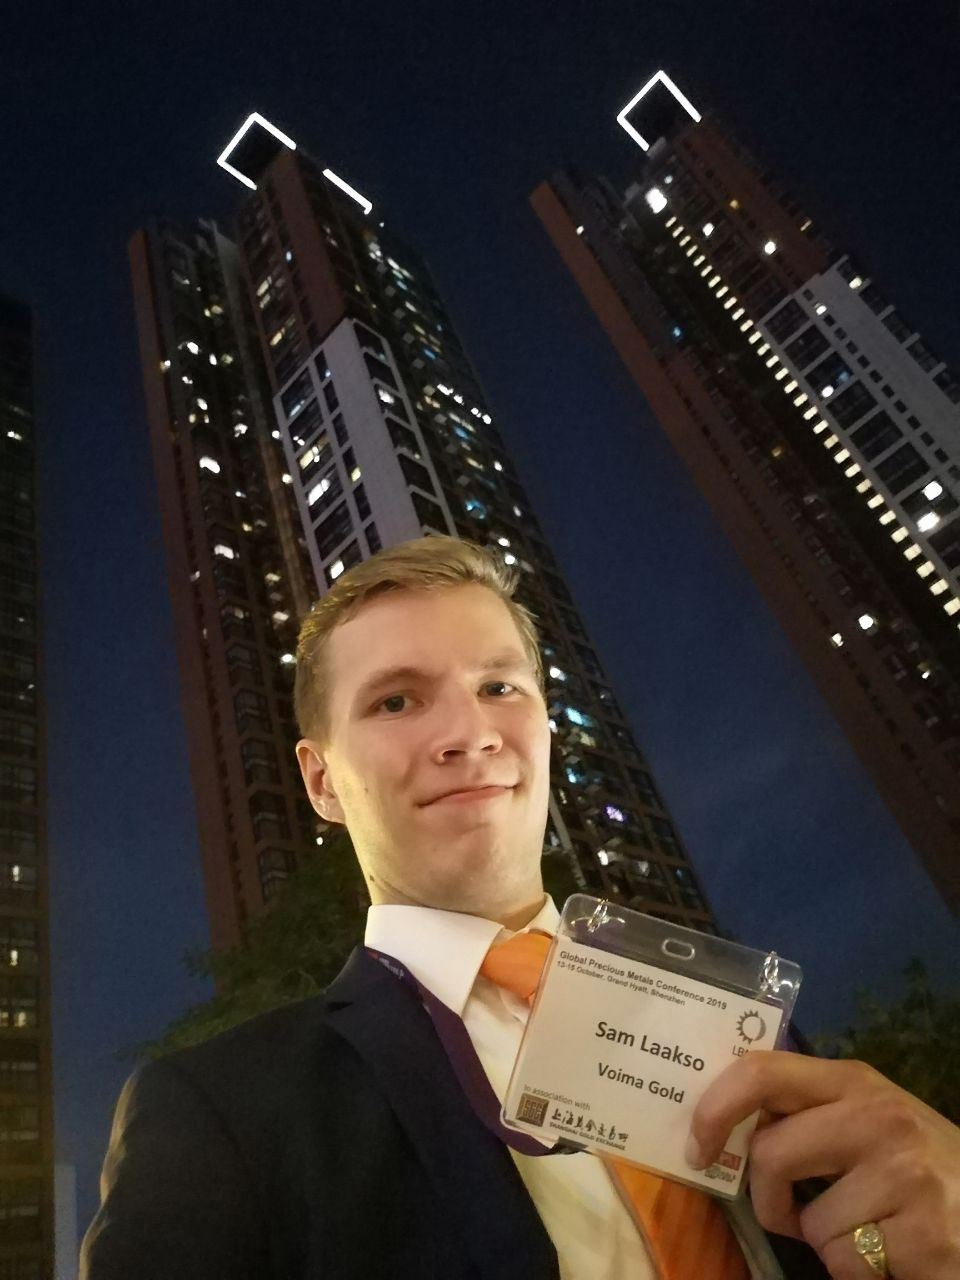 Myself in Shenzhen on the closing day of the event